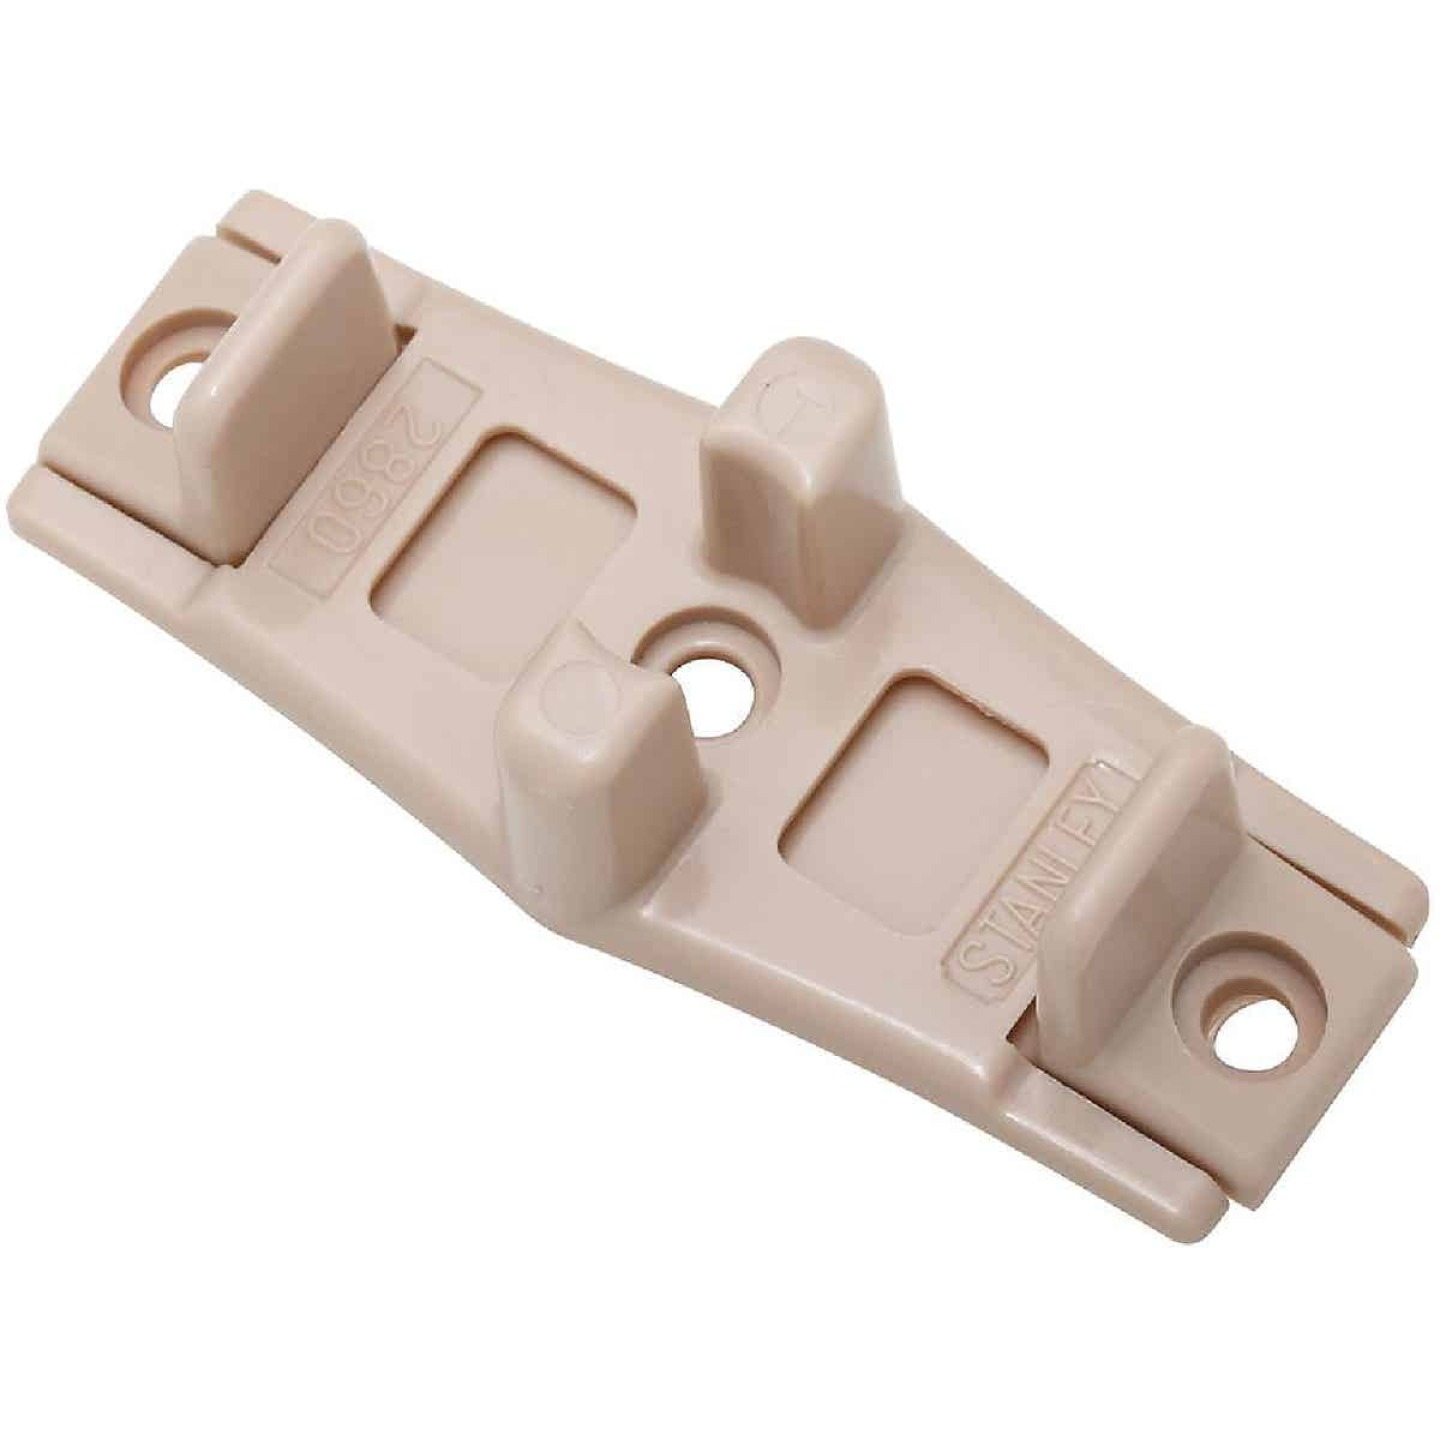 National Adjustable Door Guide Image 1